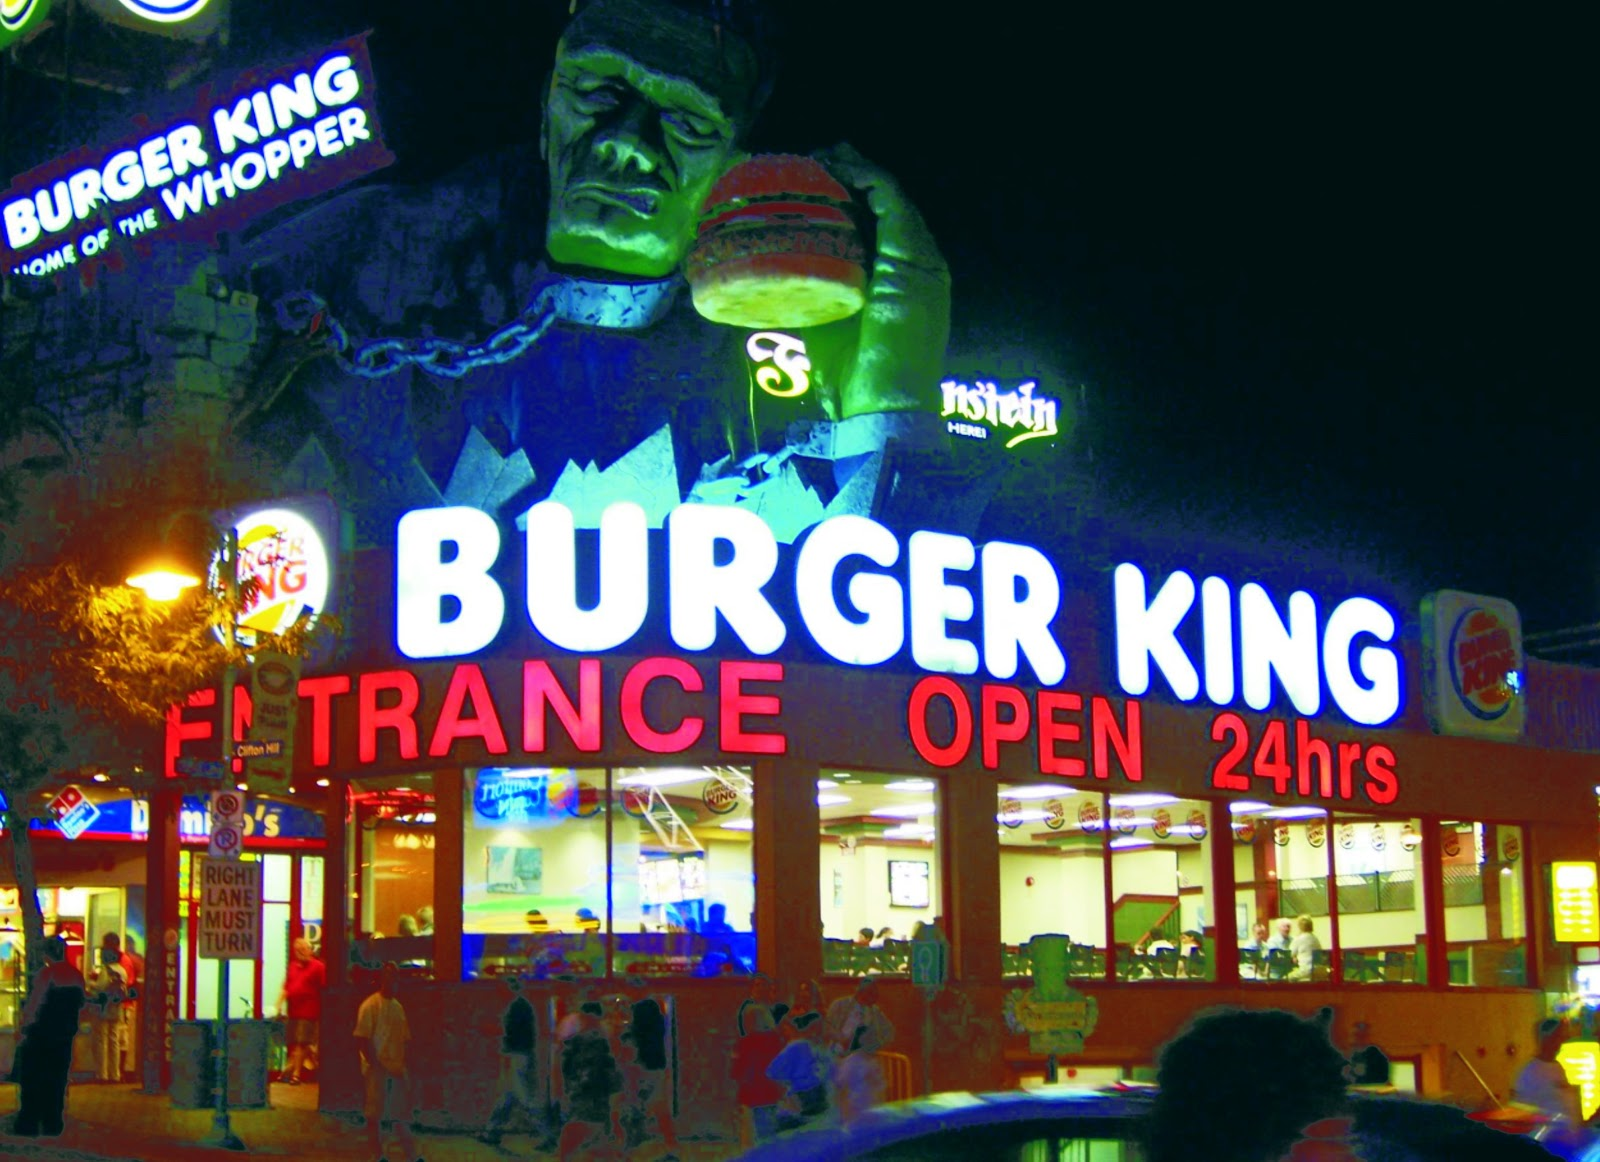 history burger king 2015-6-2  burger king is the second biggest fast food restaurant in the world behind mcdonald's while burger king might be #2, it's #1 in the hearts of many here are 12 fun facts you didn't know.